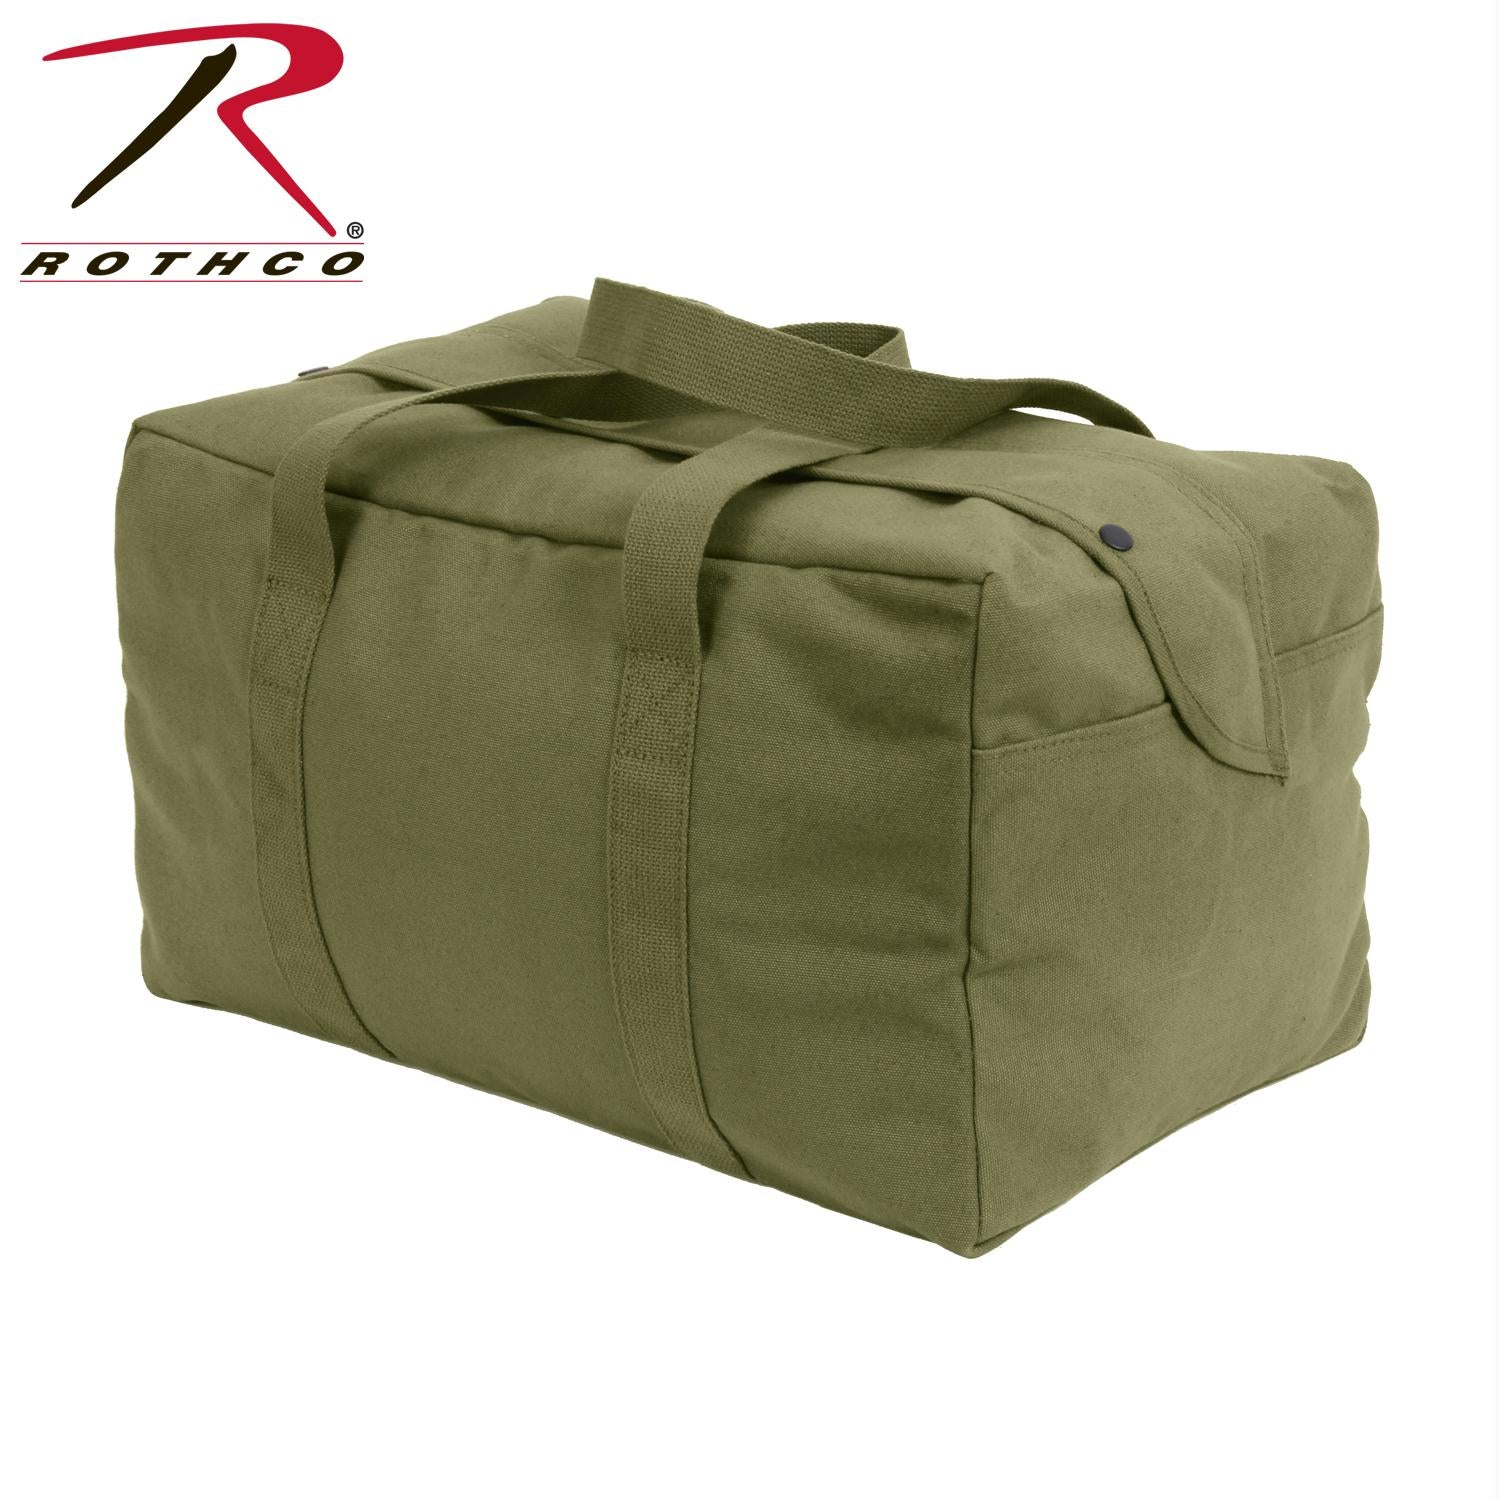 Rothco Canvas Small Parachute Cargo Bag - Olive Drab